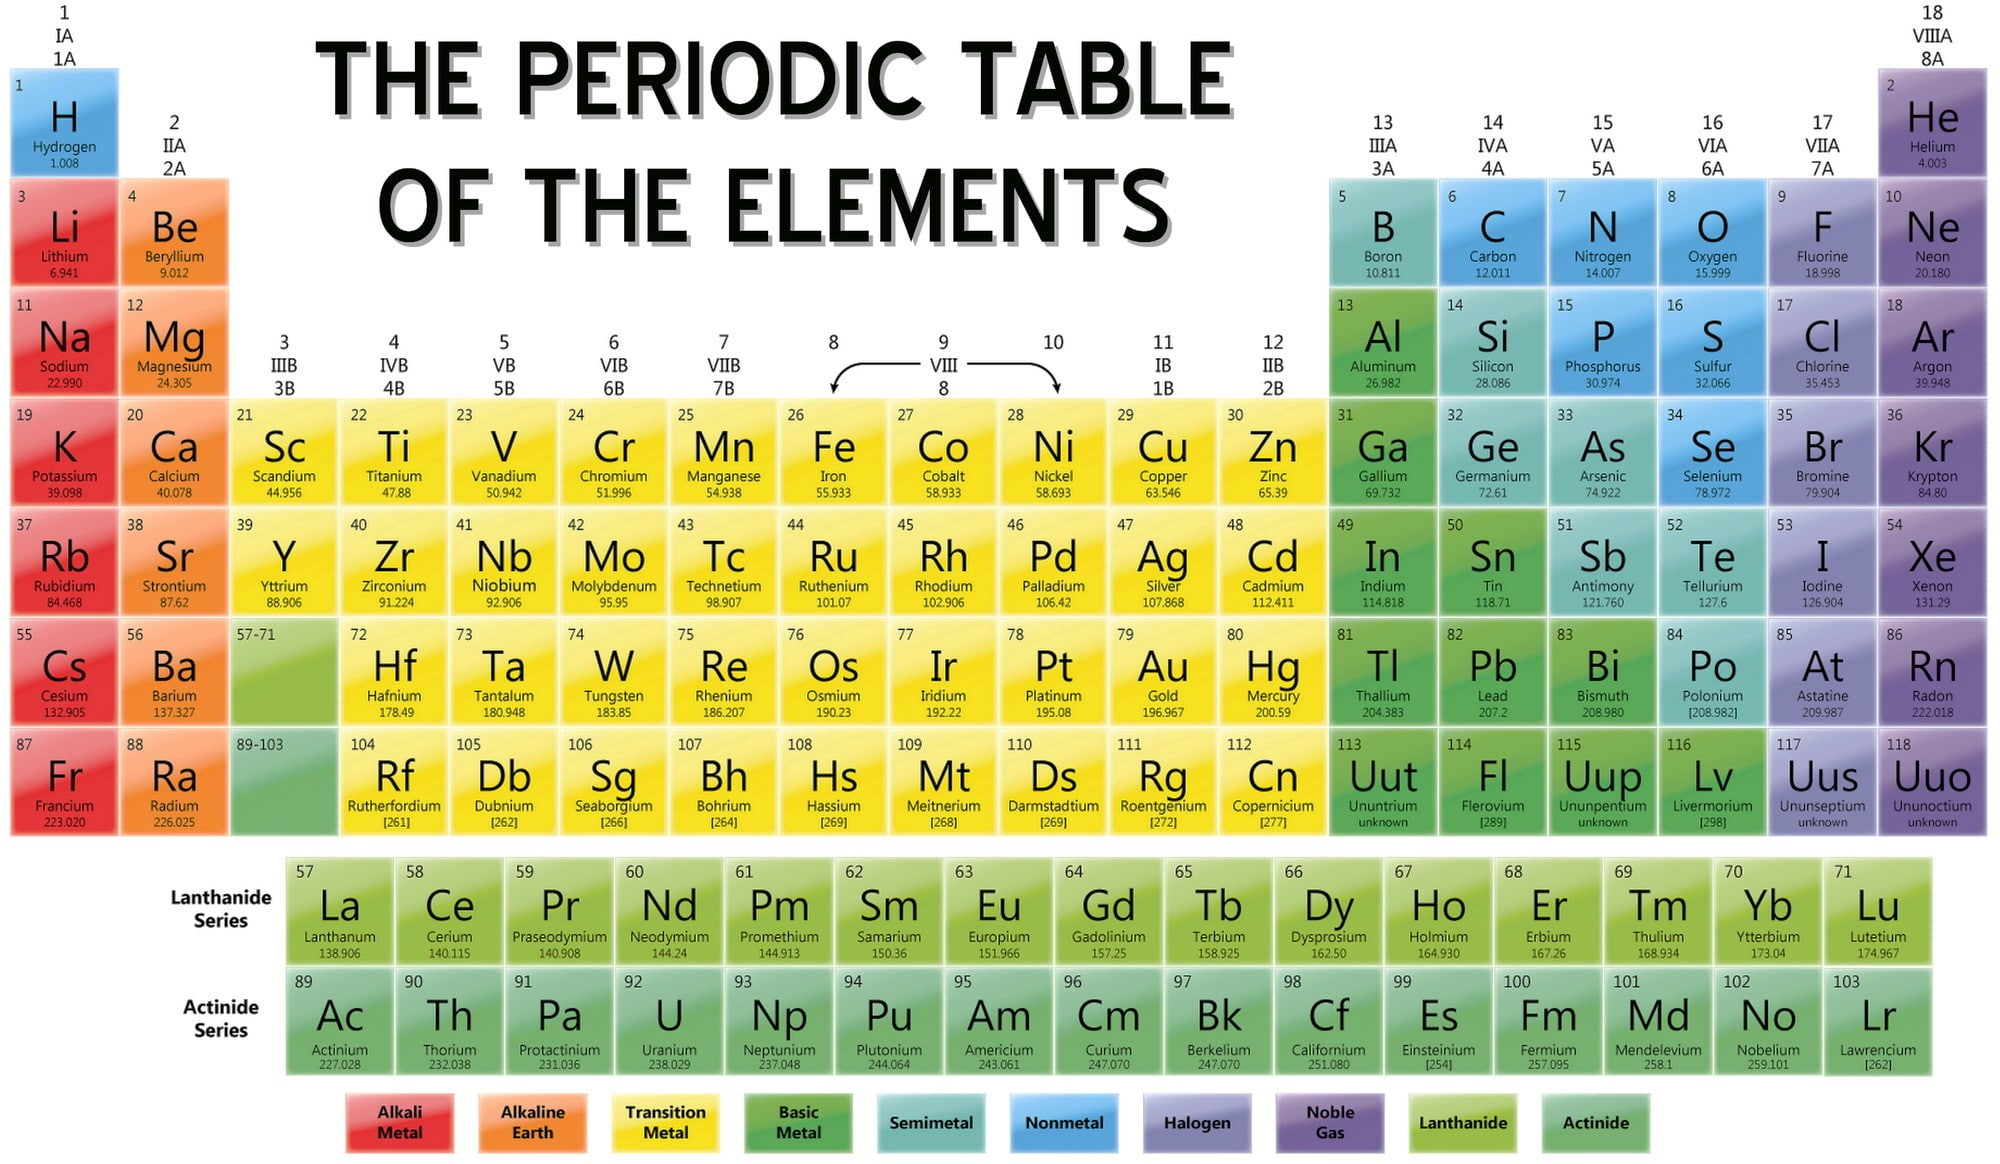 Periodic table of elements ionic bonding mrs zeringues 7th image result for periodic table of elements urtaz Image collections